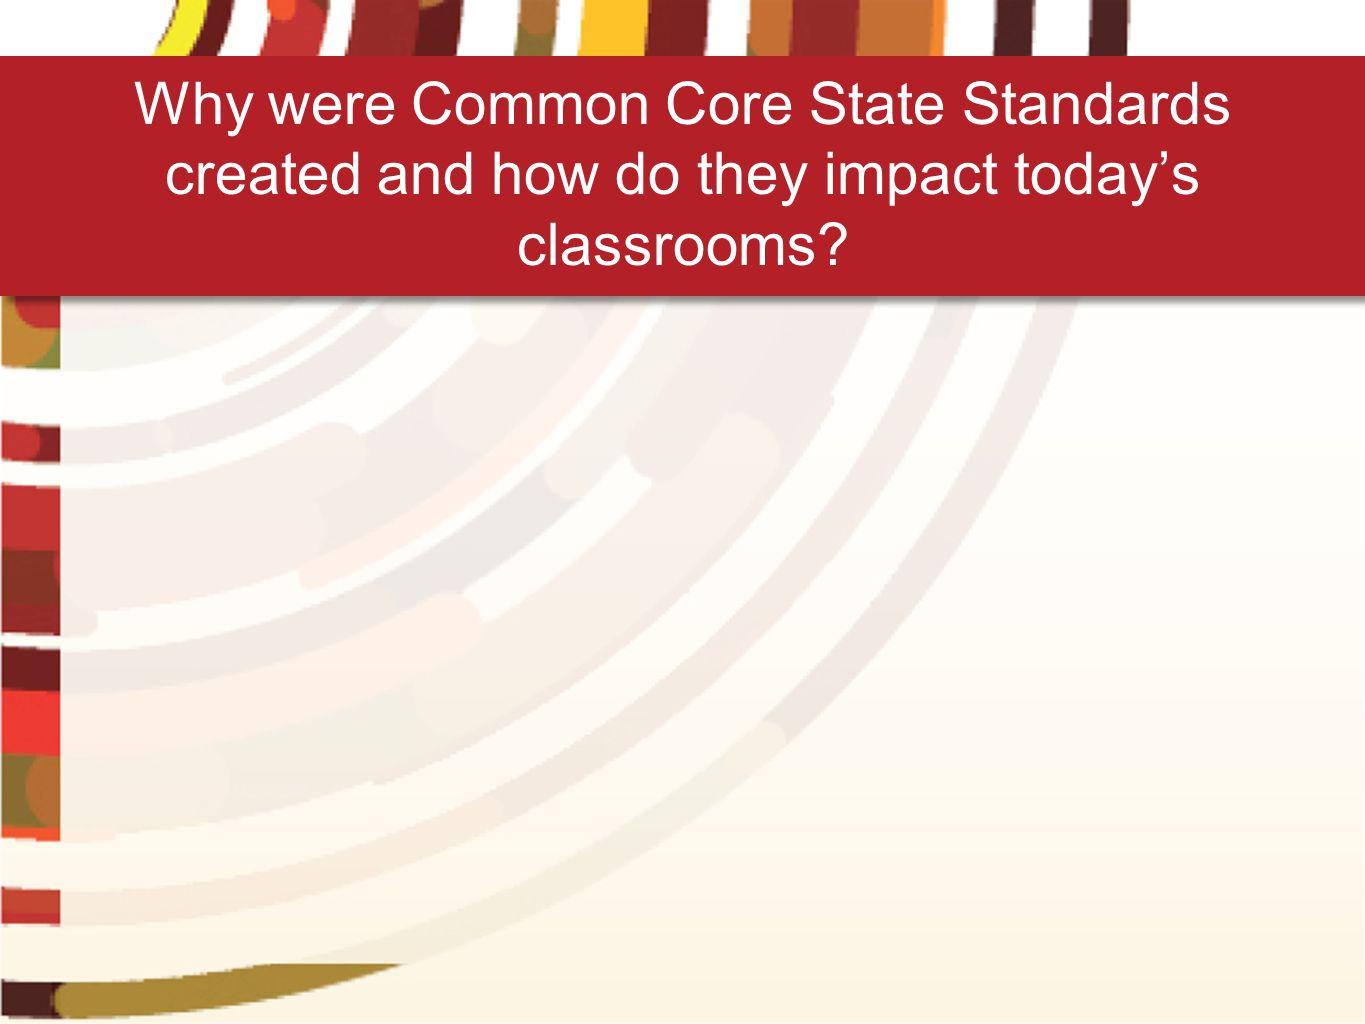 Why were Common Core State Standards created and how do they impact today's classrooms